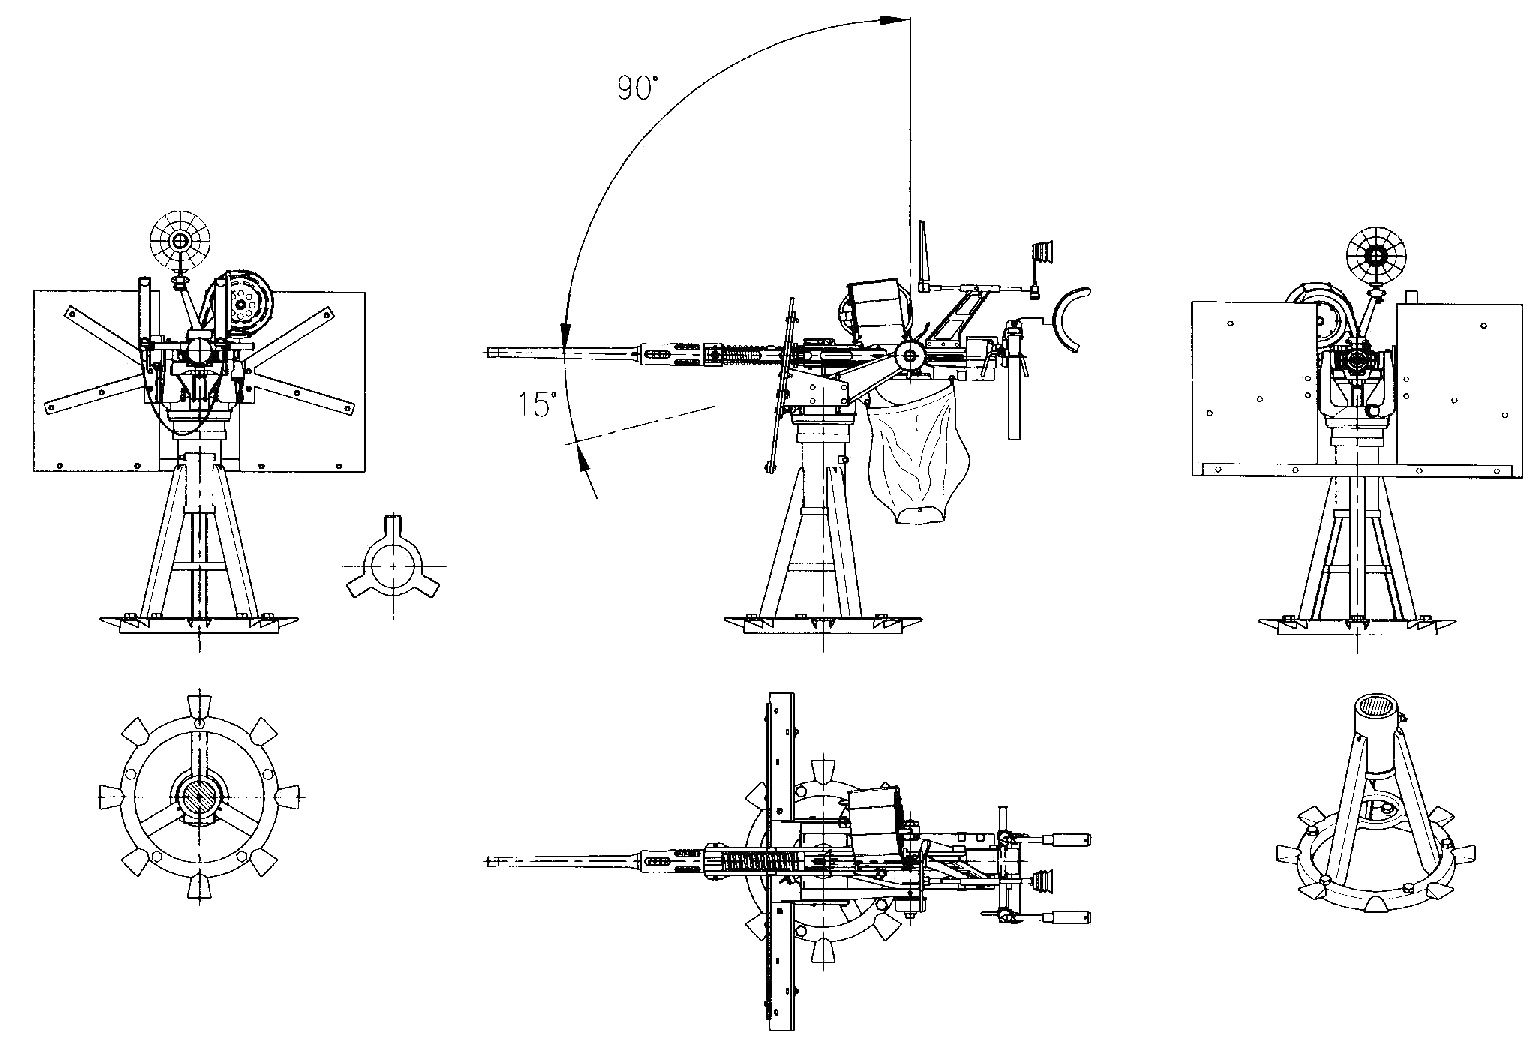 Oerlikon 20 mm cannon blueprint